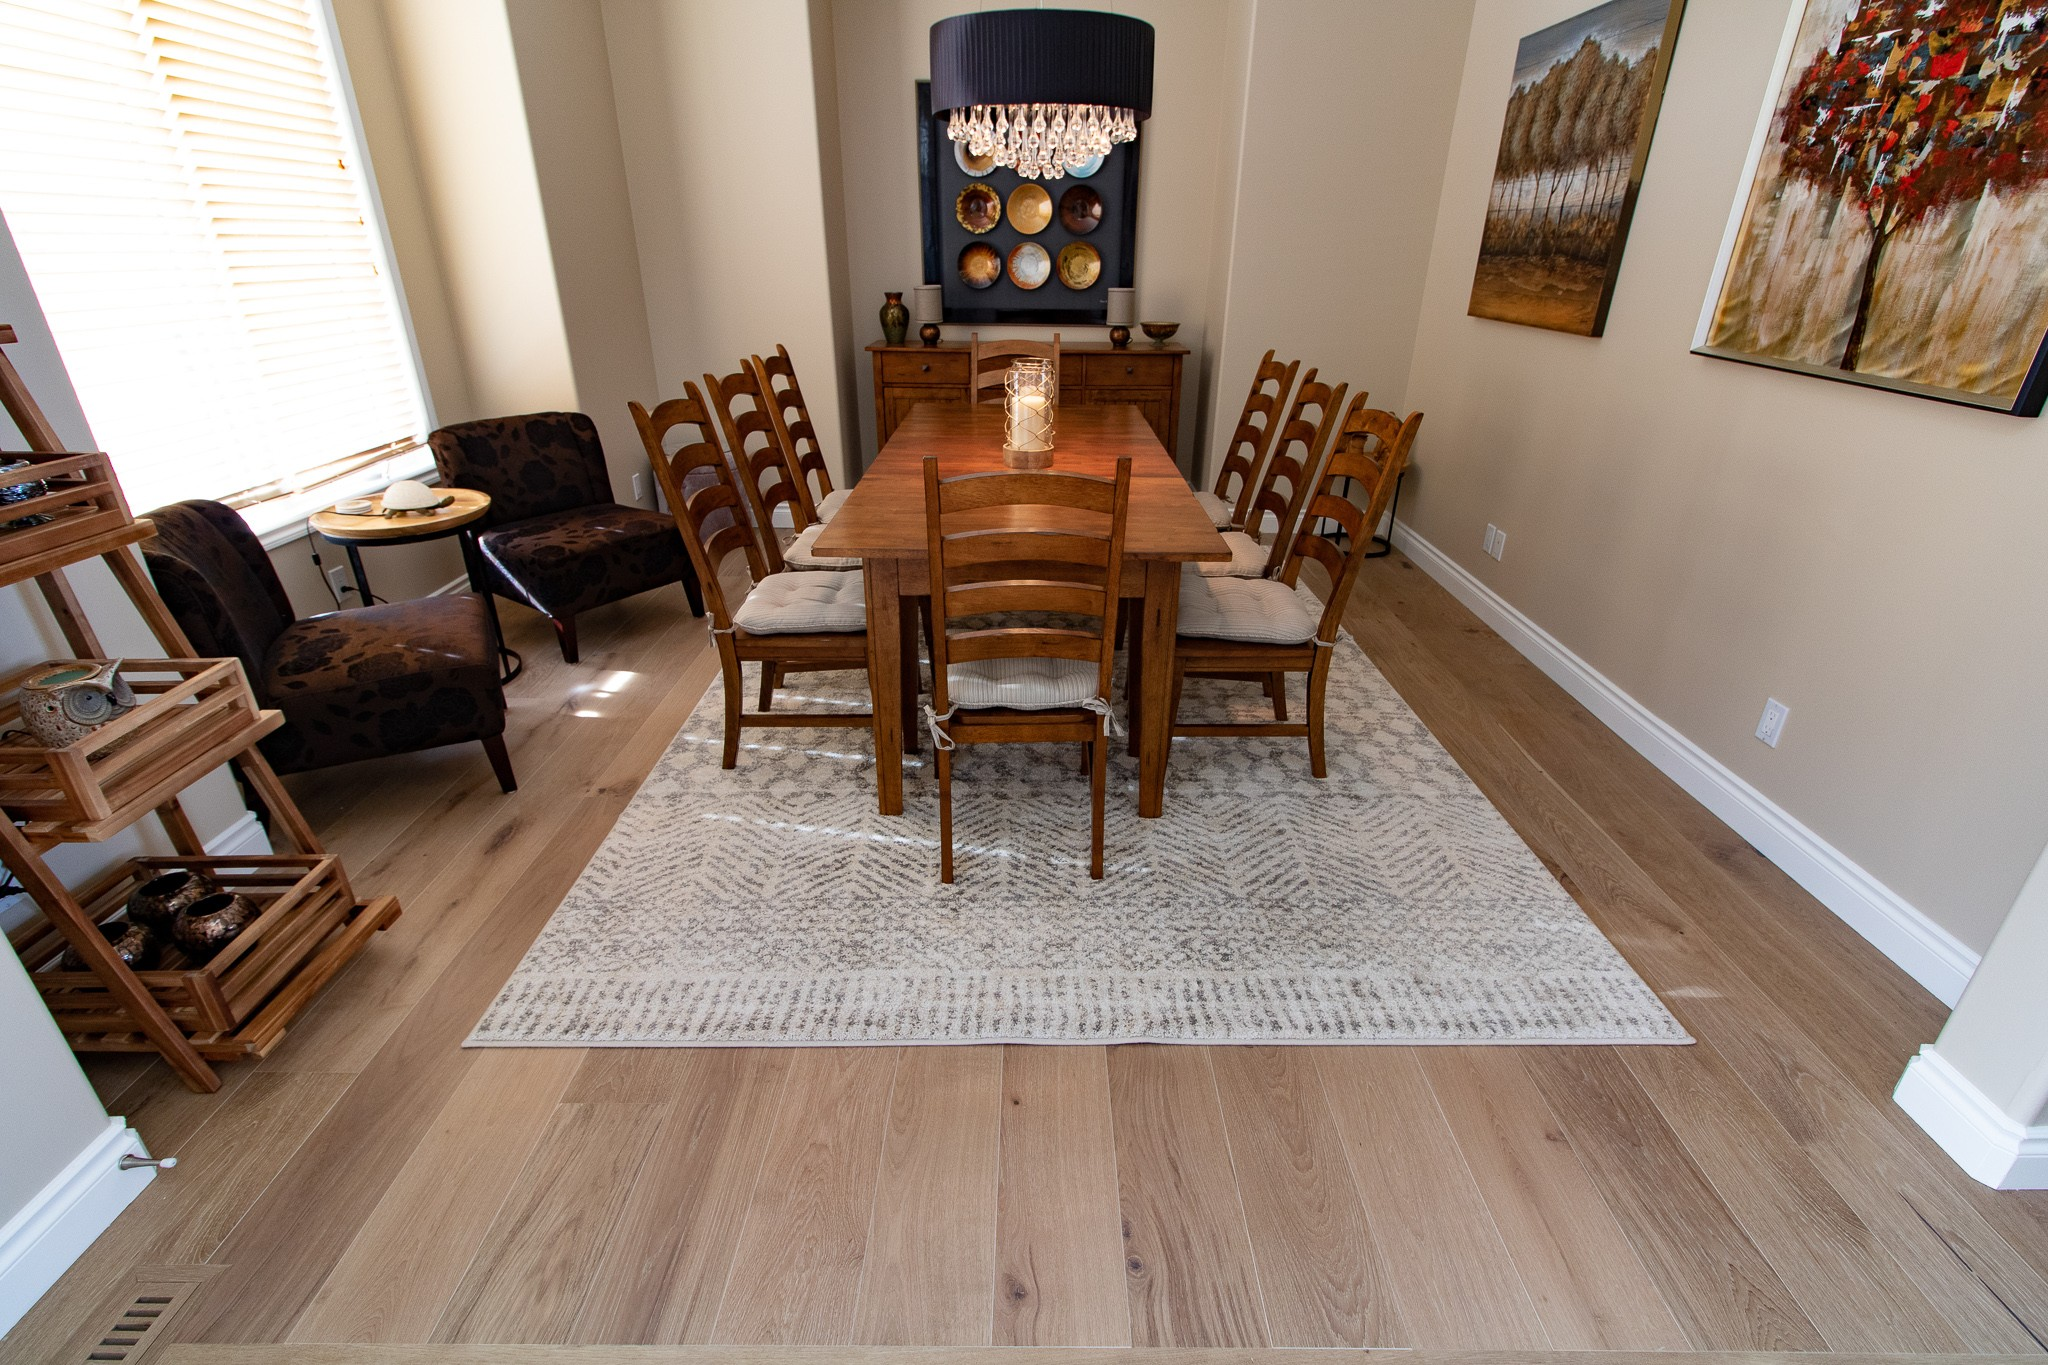 Dining room flooring | Floorscapes